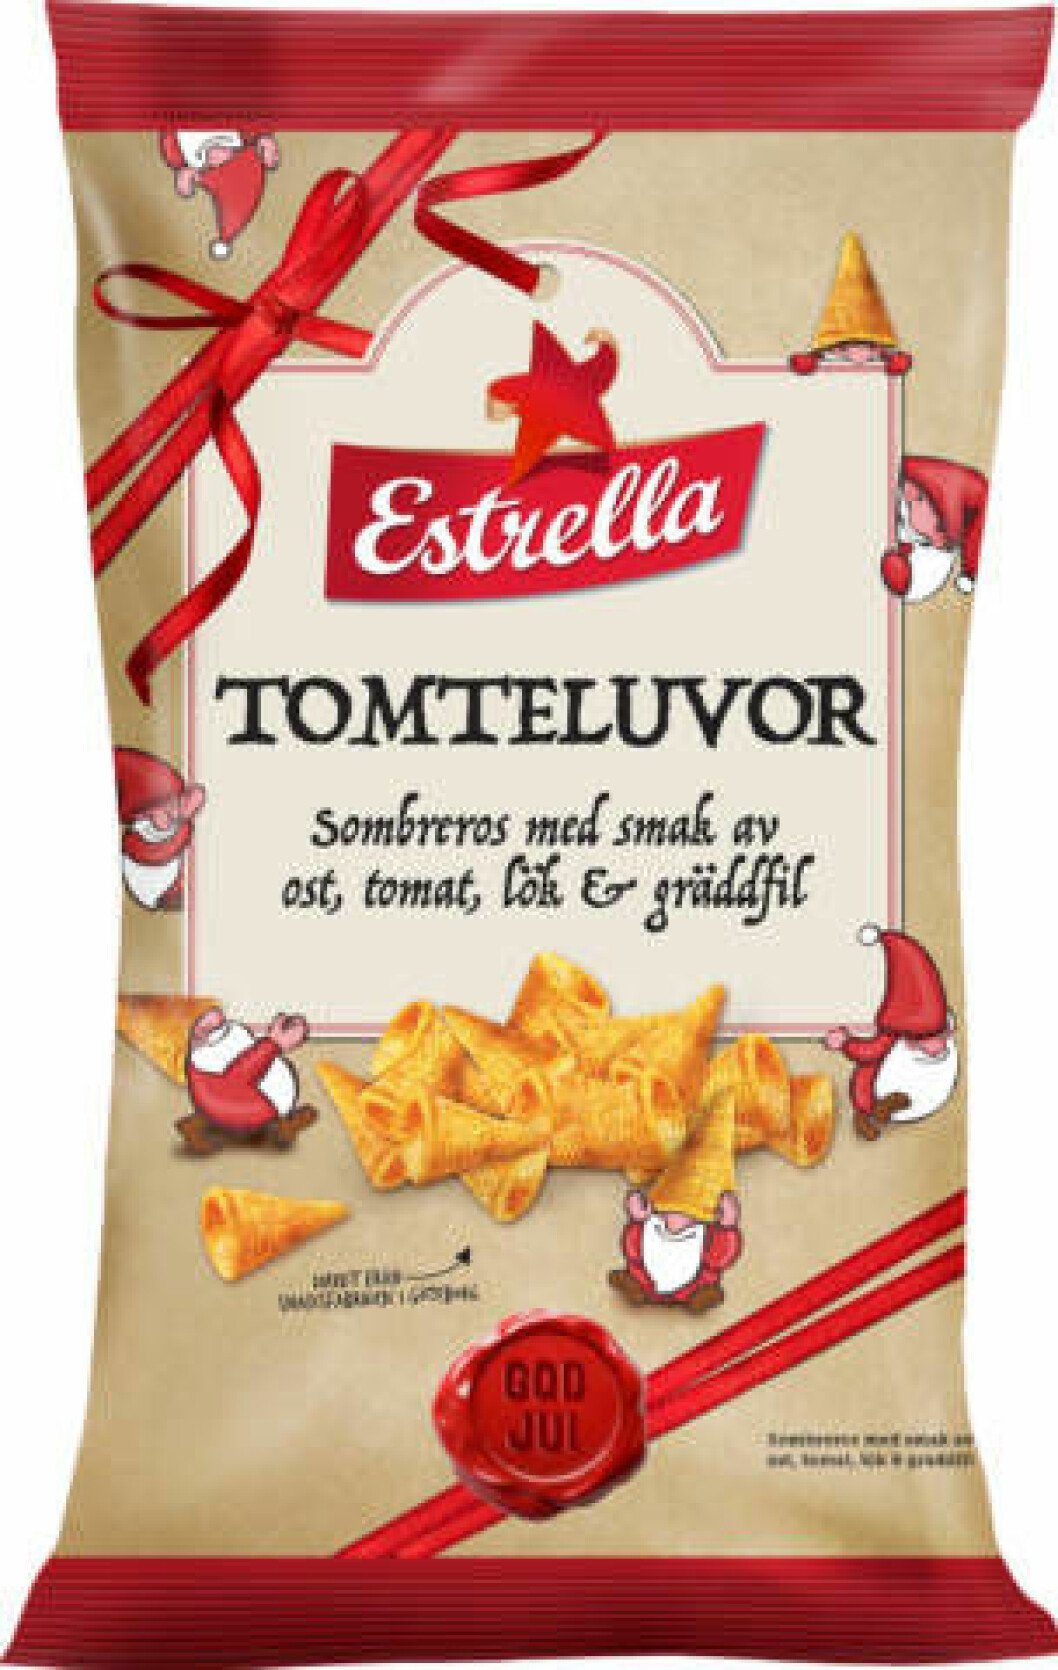 Tomteluvor snacks.